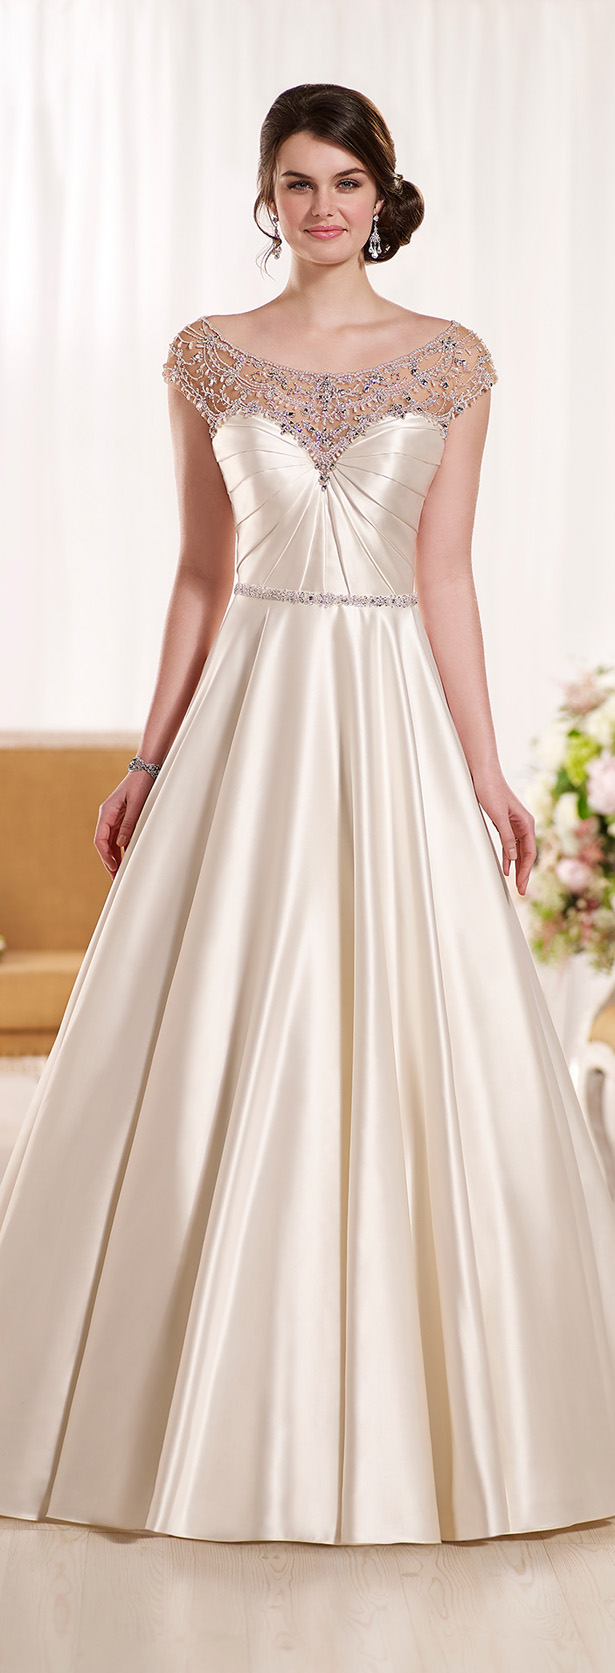 Wedding dress by Essense of Australia Spring 2016 Bridal Collection